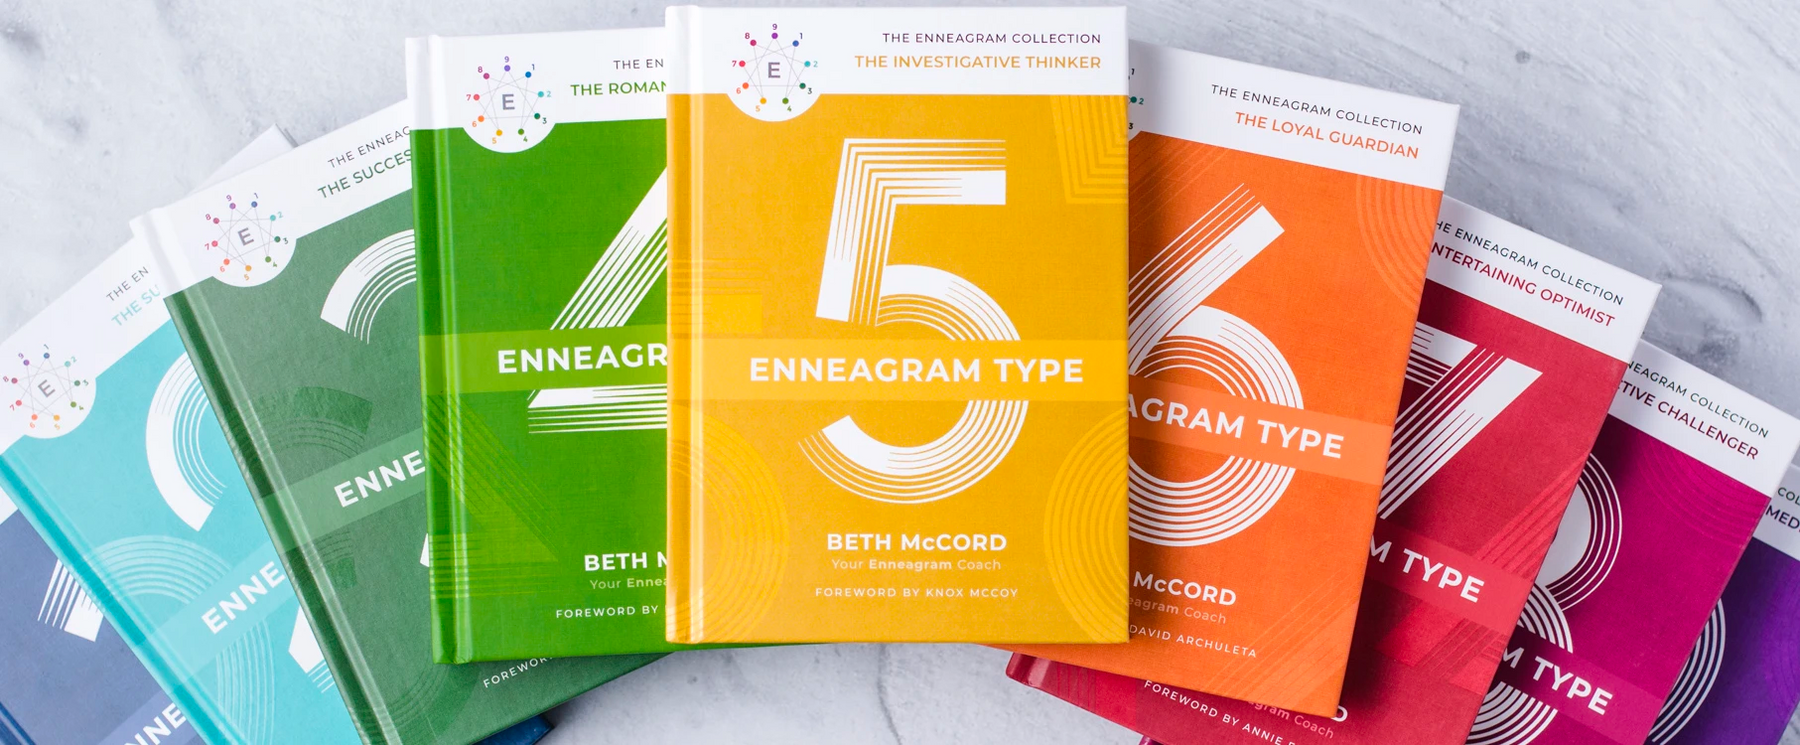 A Gospel-Centered Approach to the Enneagram